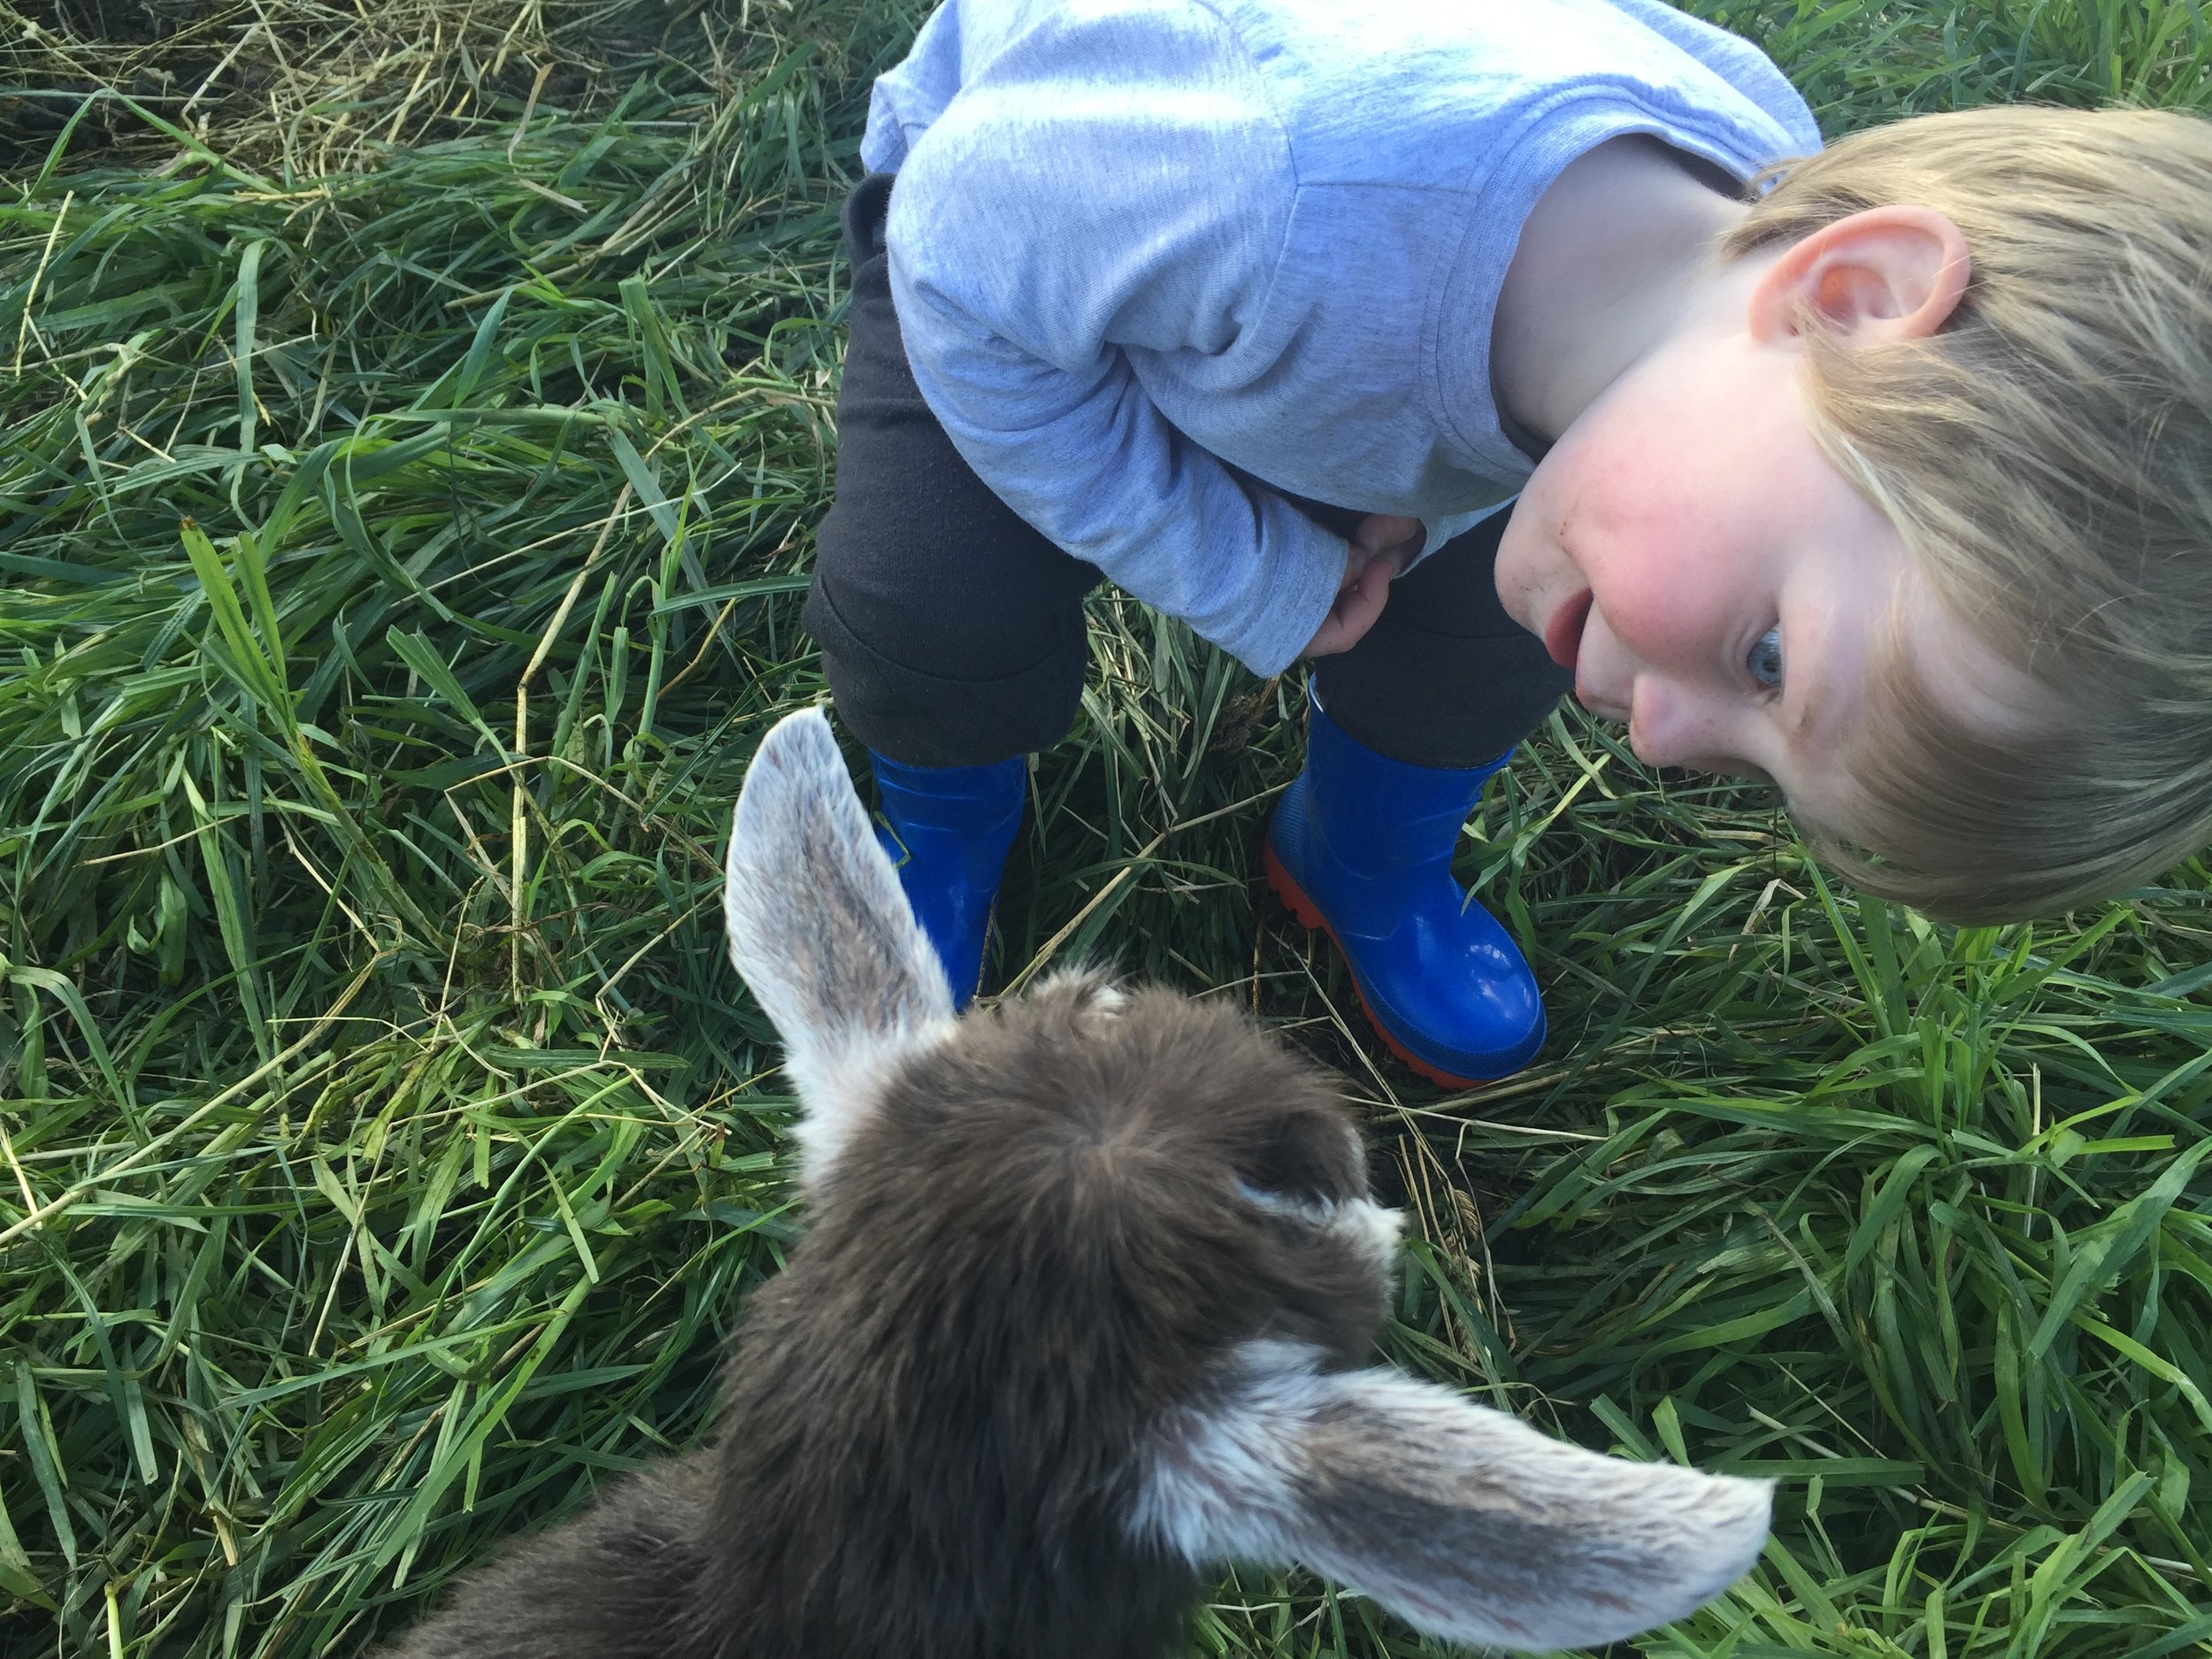 Hamish gets up close to one of Tabby's kids.